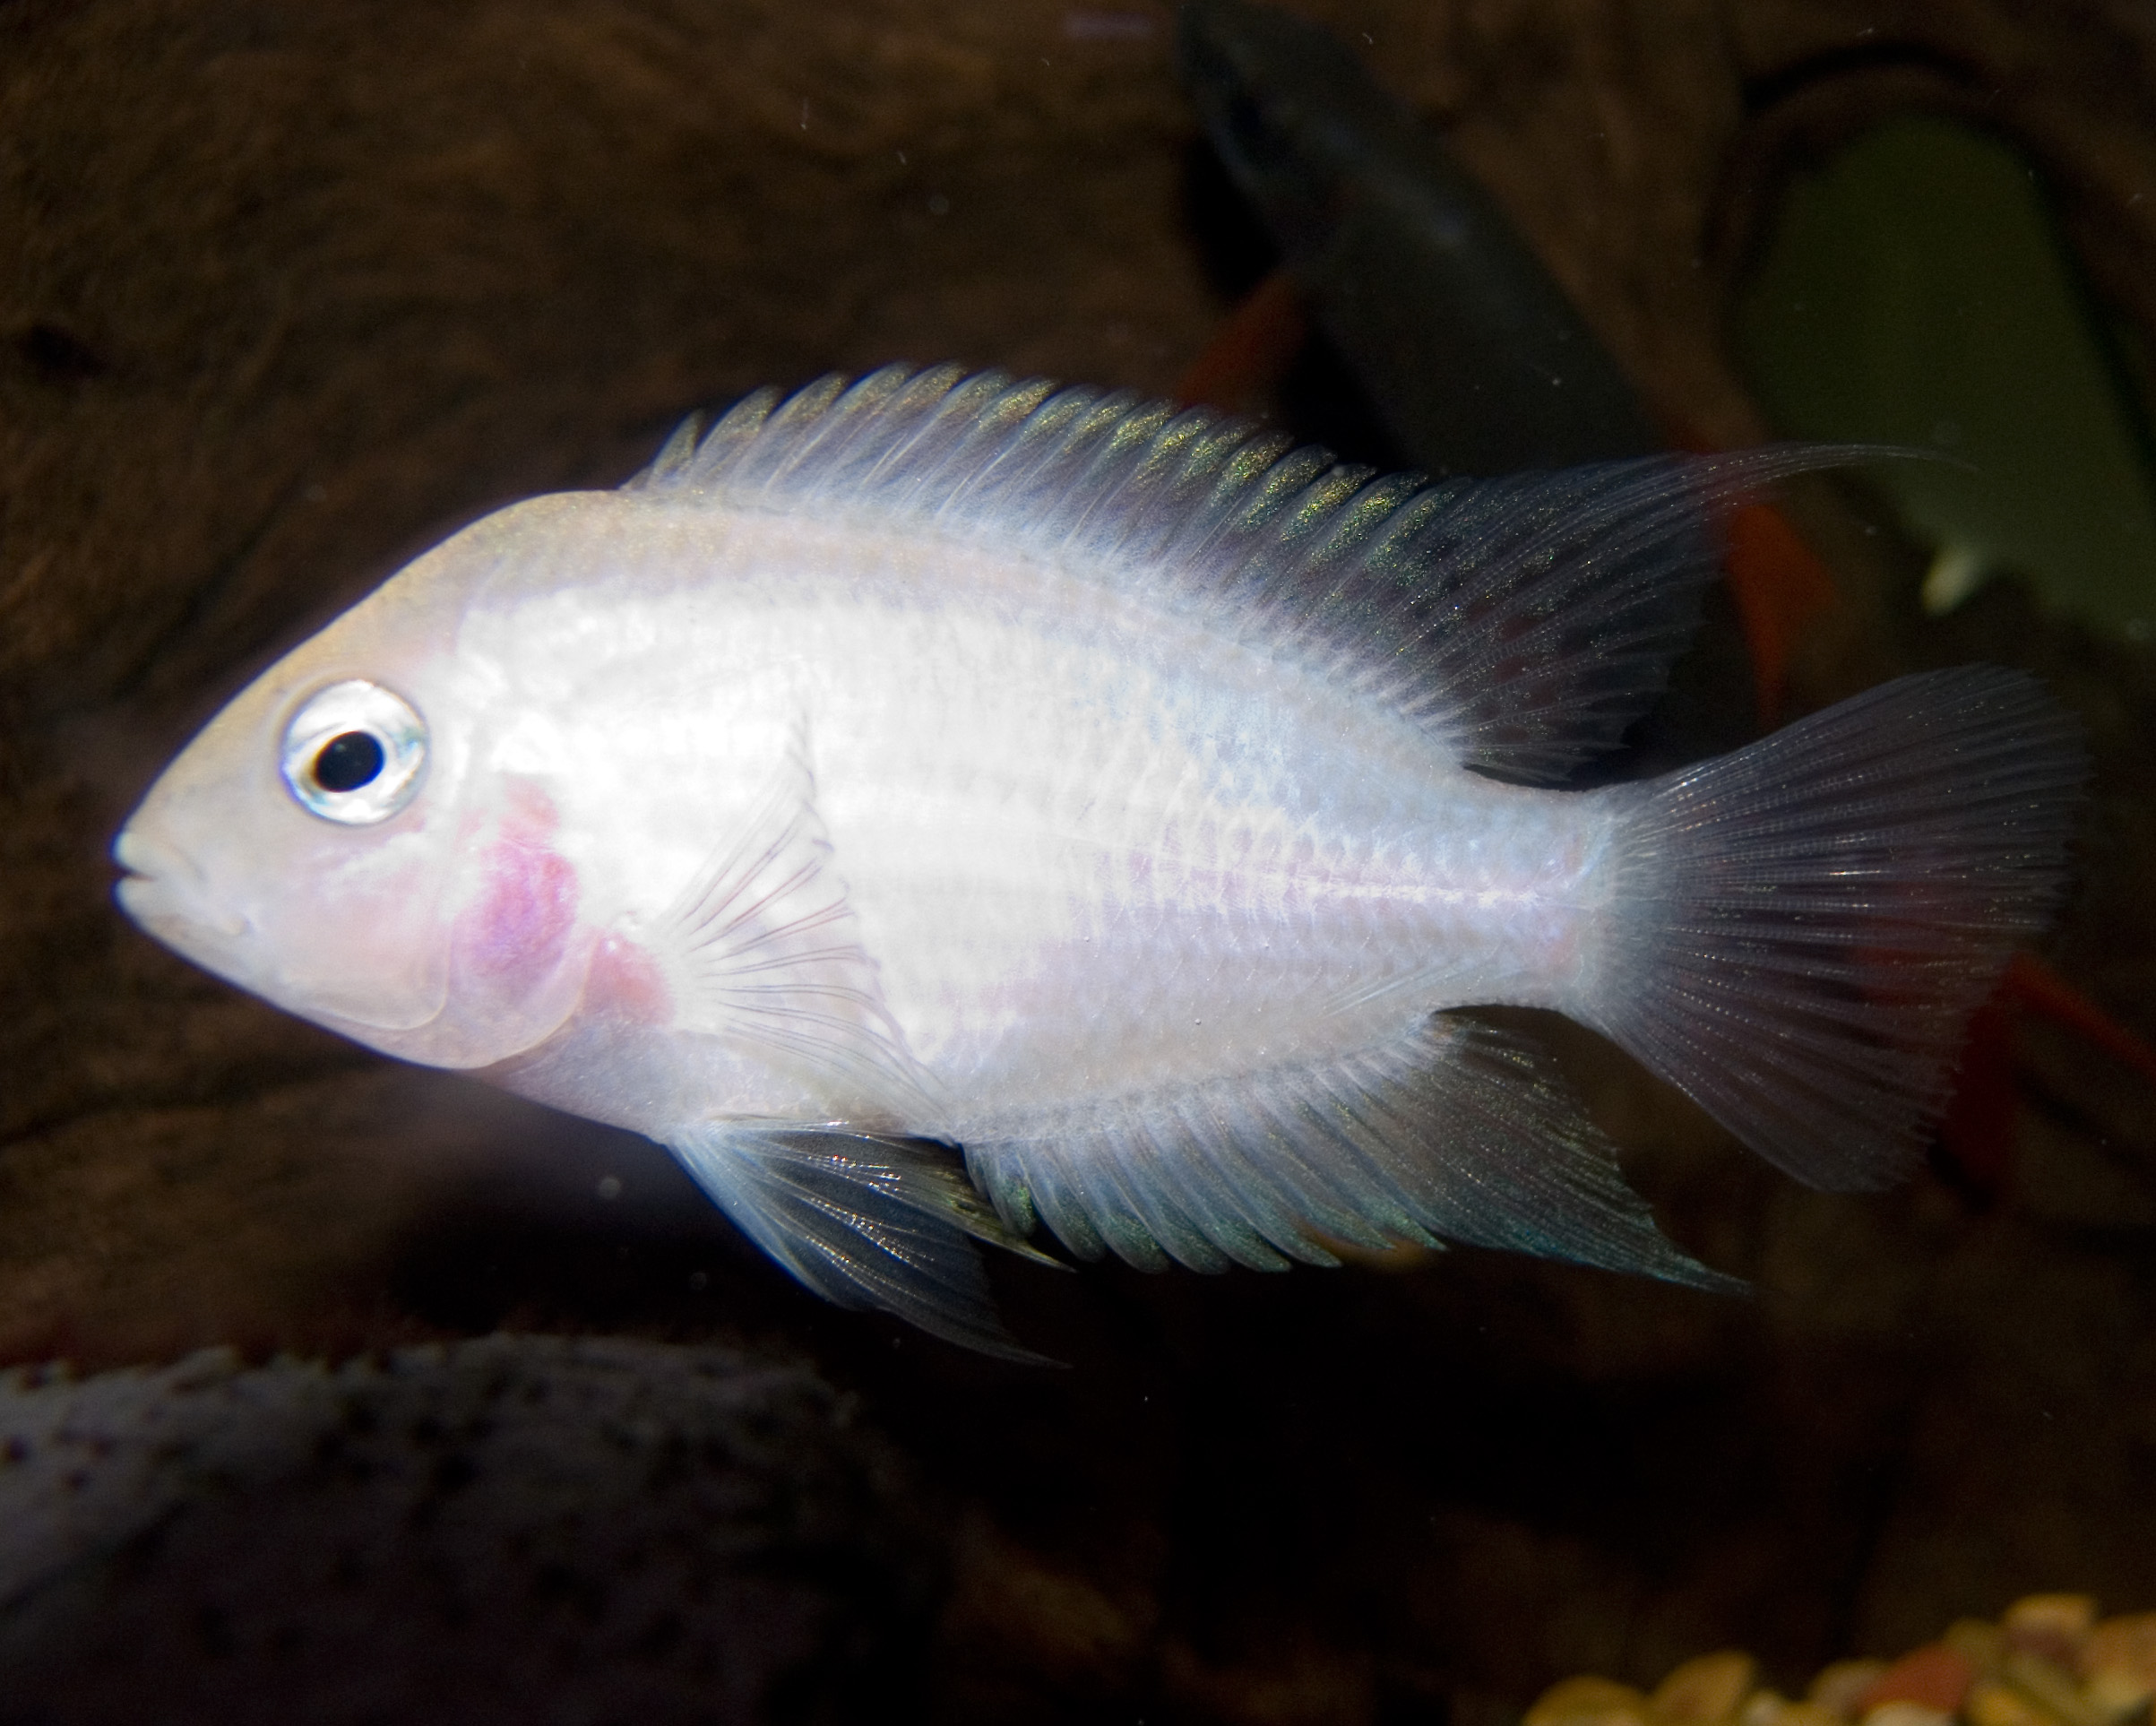 File:Pink Convict Cichlid.jpg - Wikipedia, the free encyclopedia